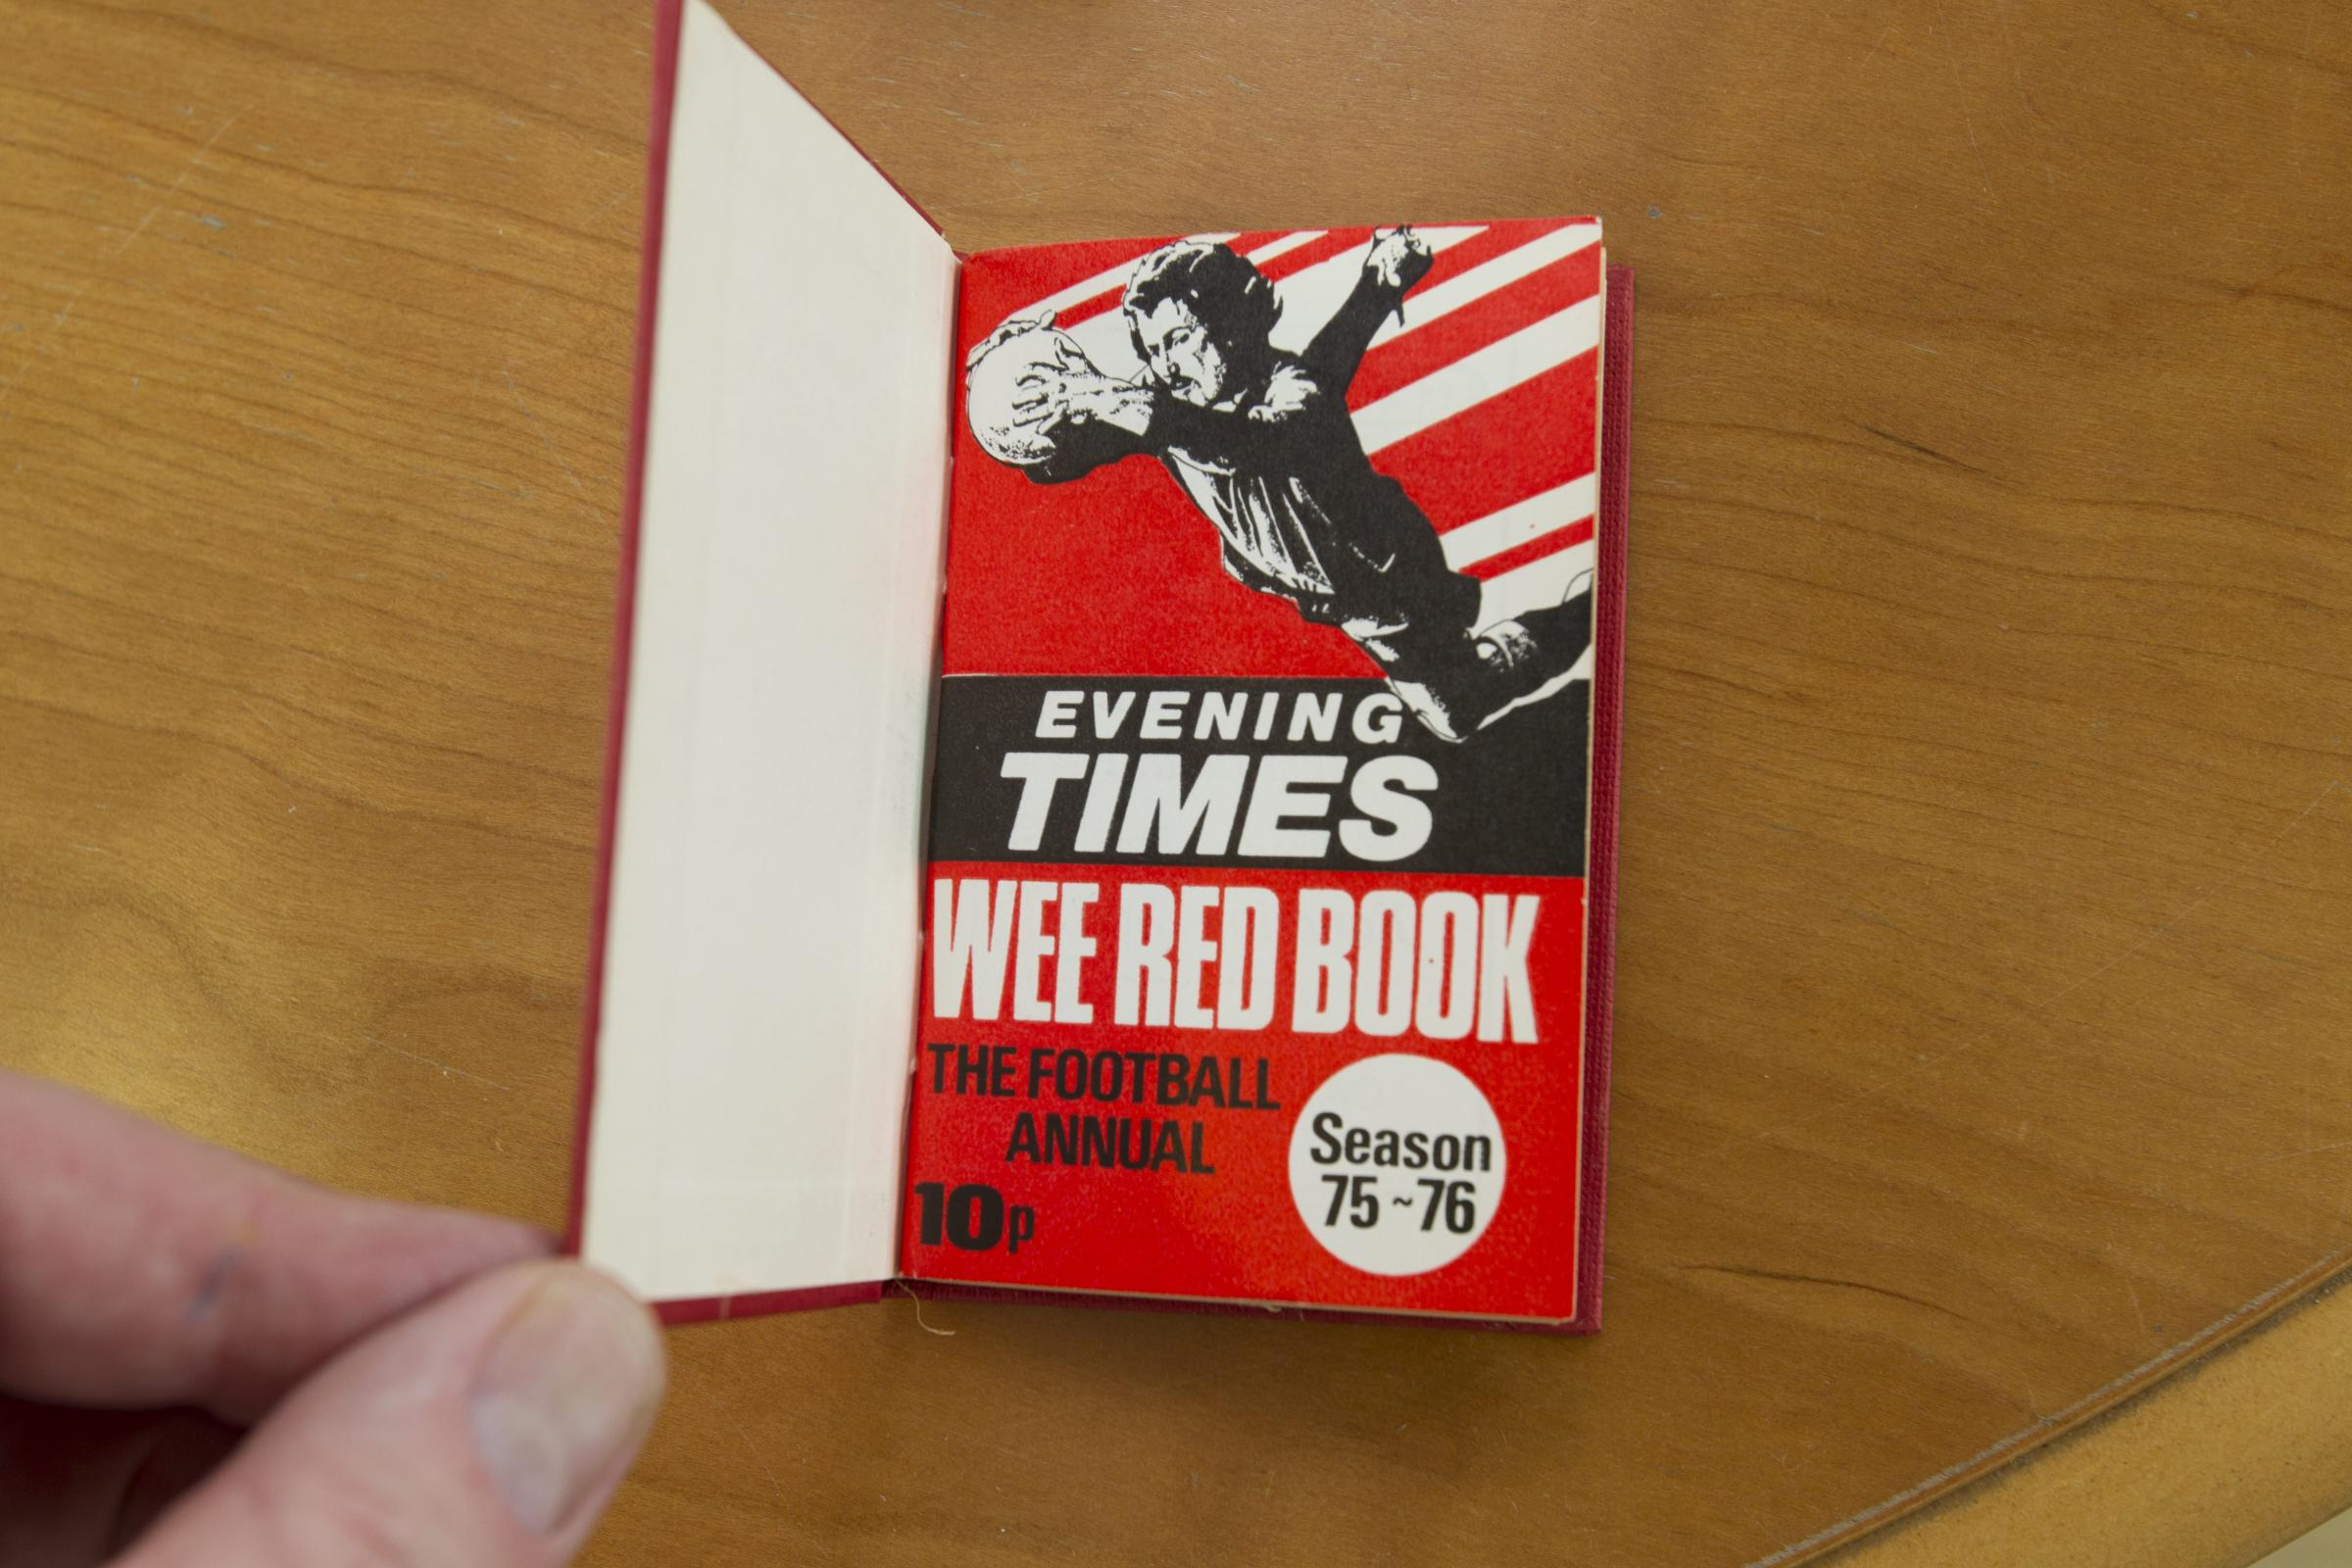 Neil Cameron: The Wee Red Book remains a brilliant guide to football at its best